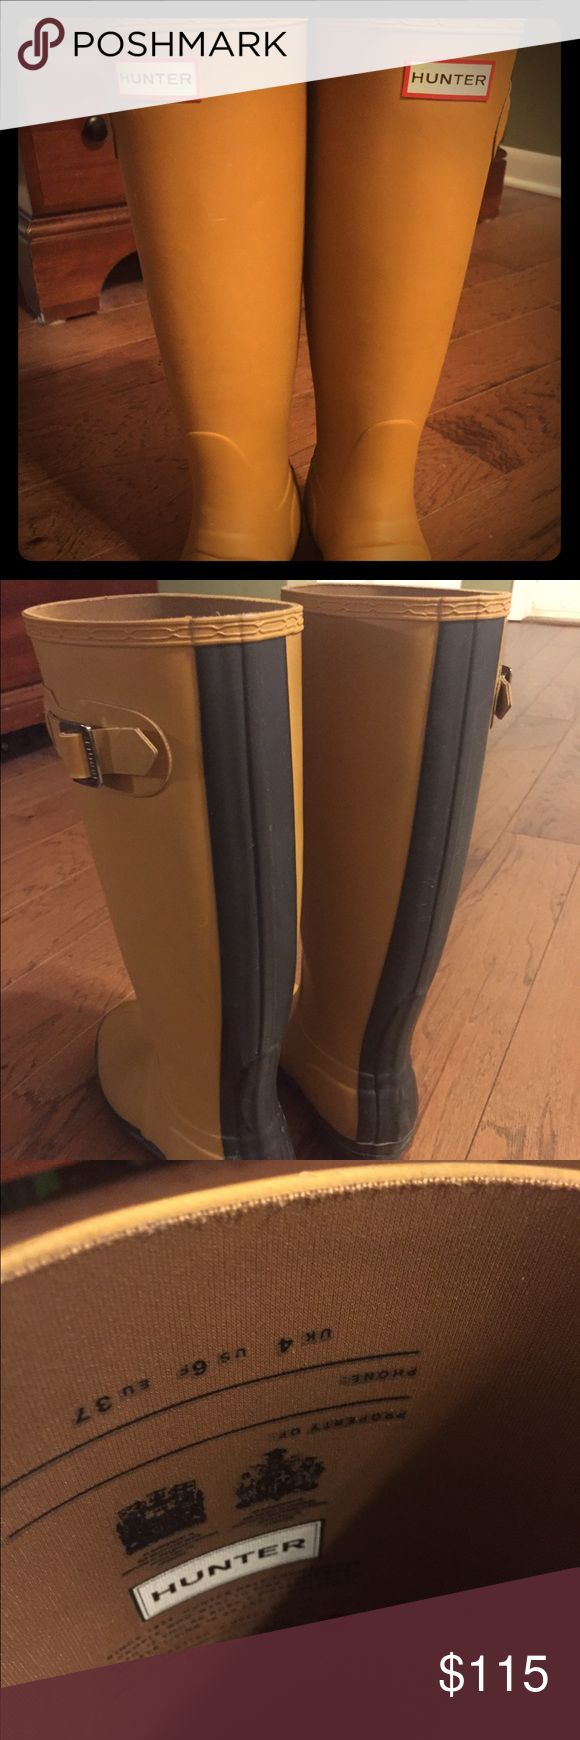 Beige Hunter boots with Black stripe Rare Beige matte Hunter boots with Black stripe Hunter Boots Shoes Winter & Rain Boots